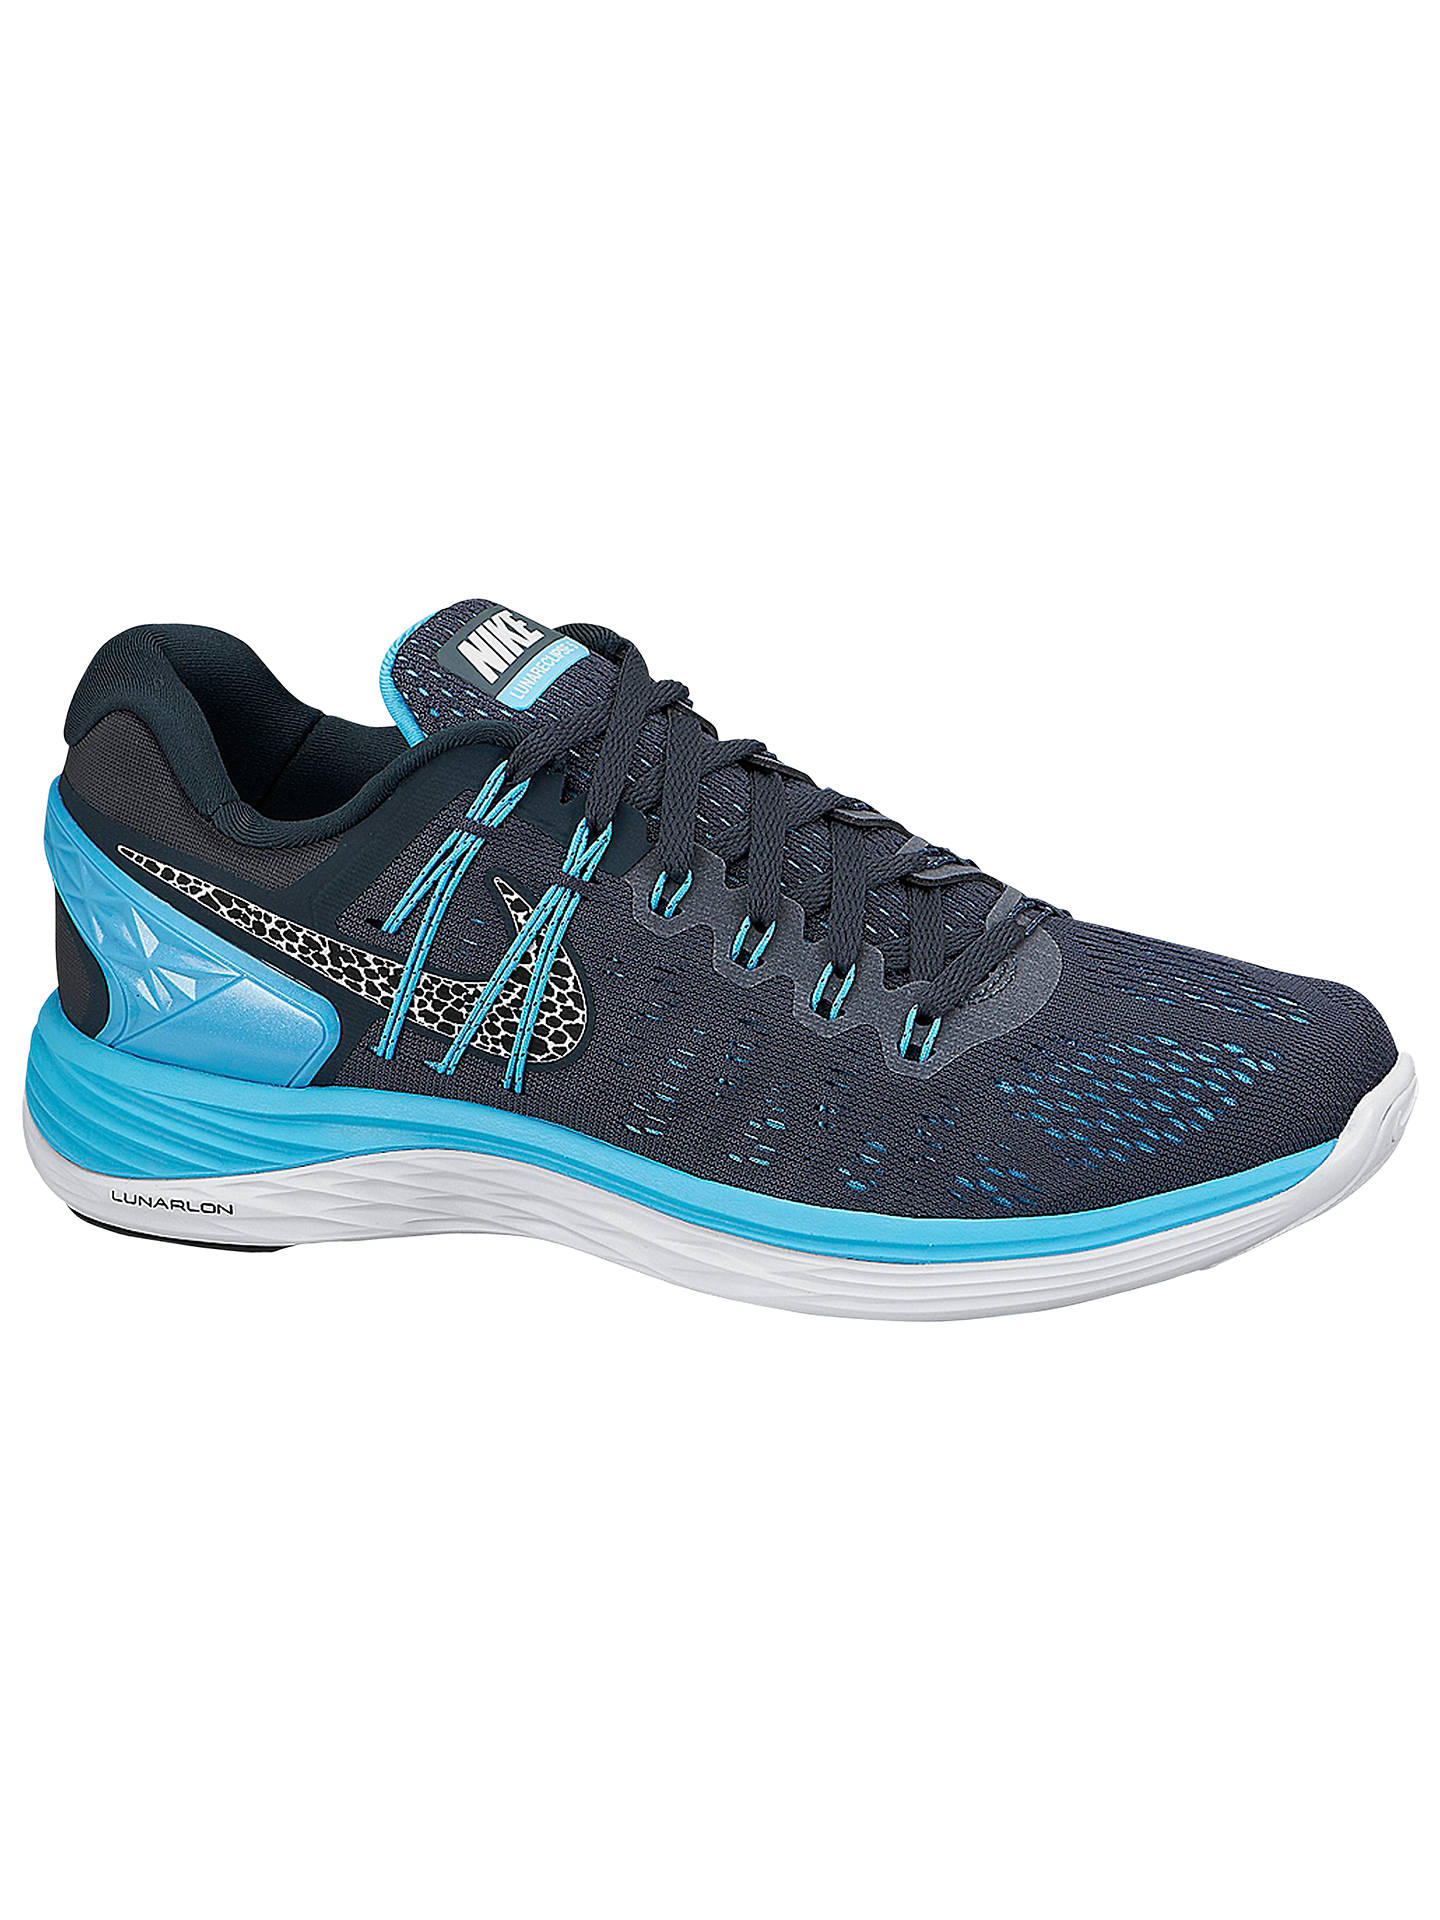 reputable site 4b076 c5e0b Buy Nike LunarEclipse 5 Women s Running Shoes, Grey Blue, 4 Online at  johnlewis ...